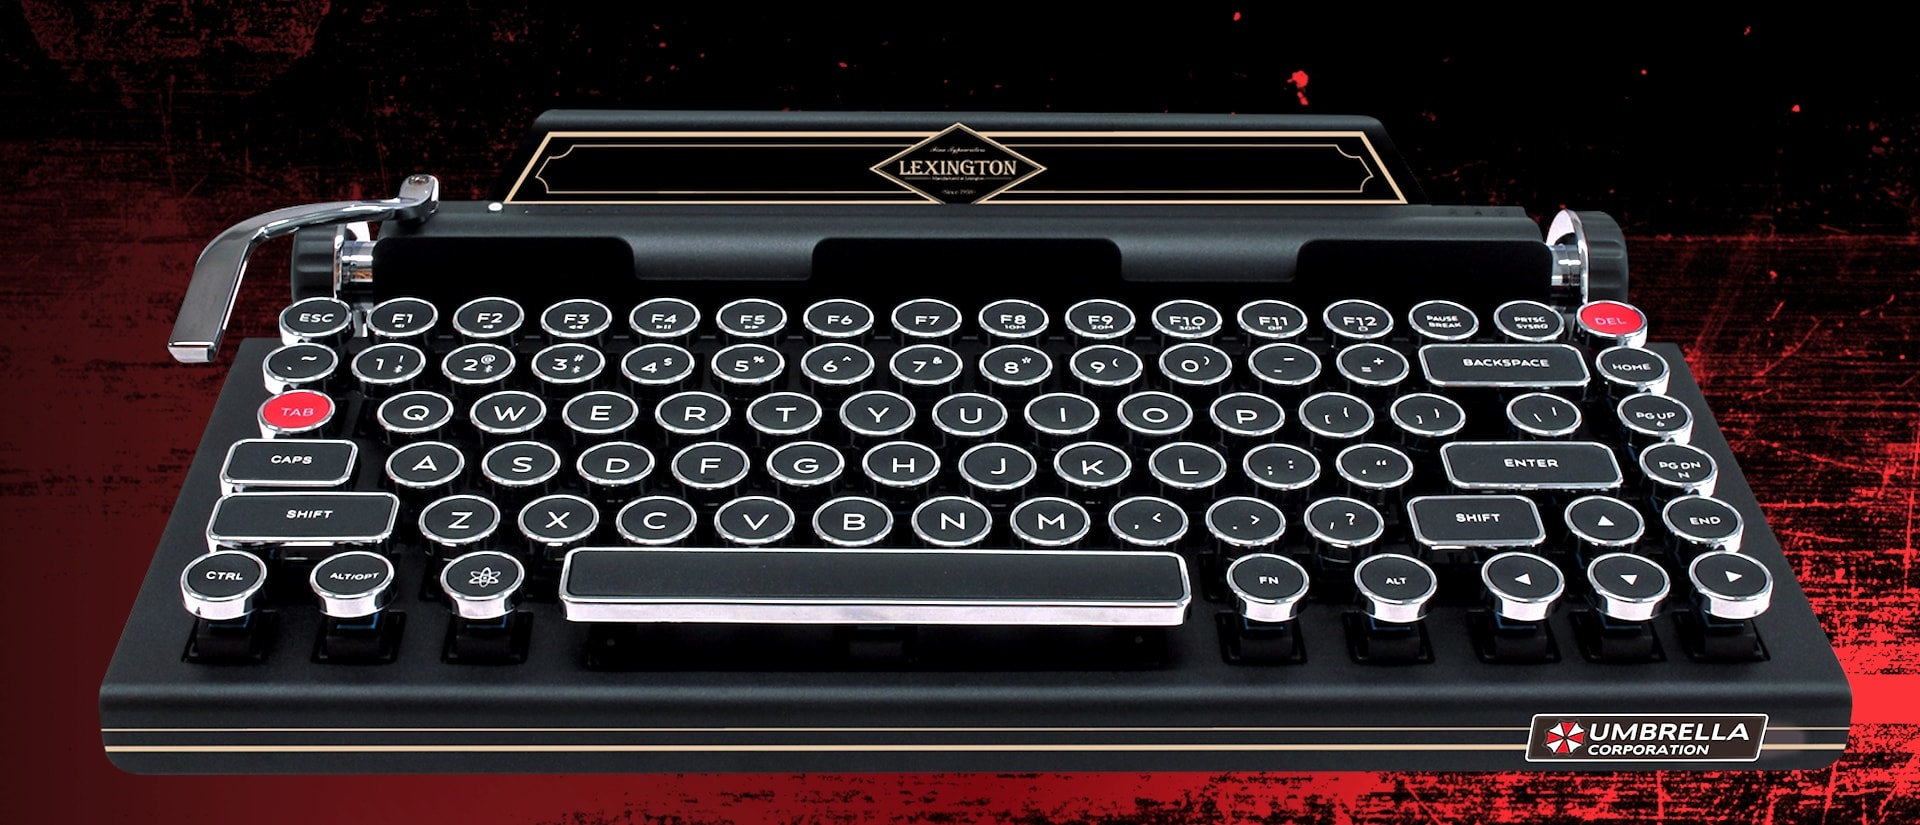 Capcom made a ridiculous typewriter keyboard for 'Resident